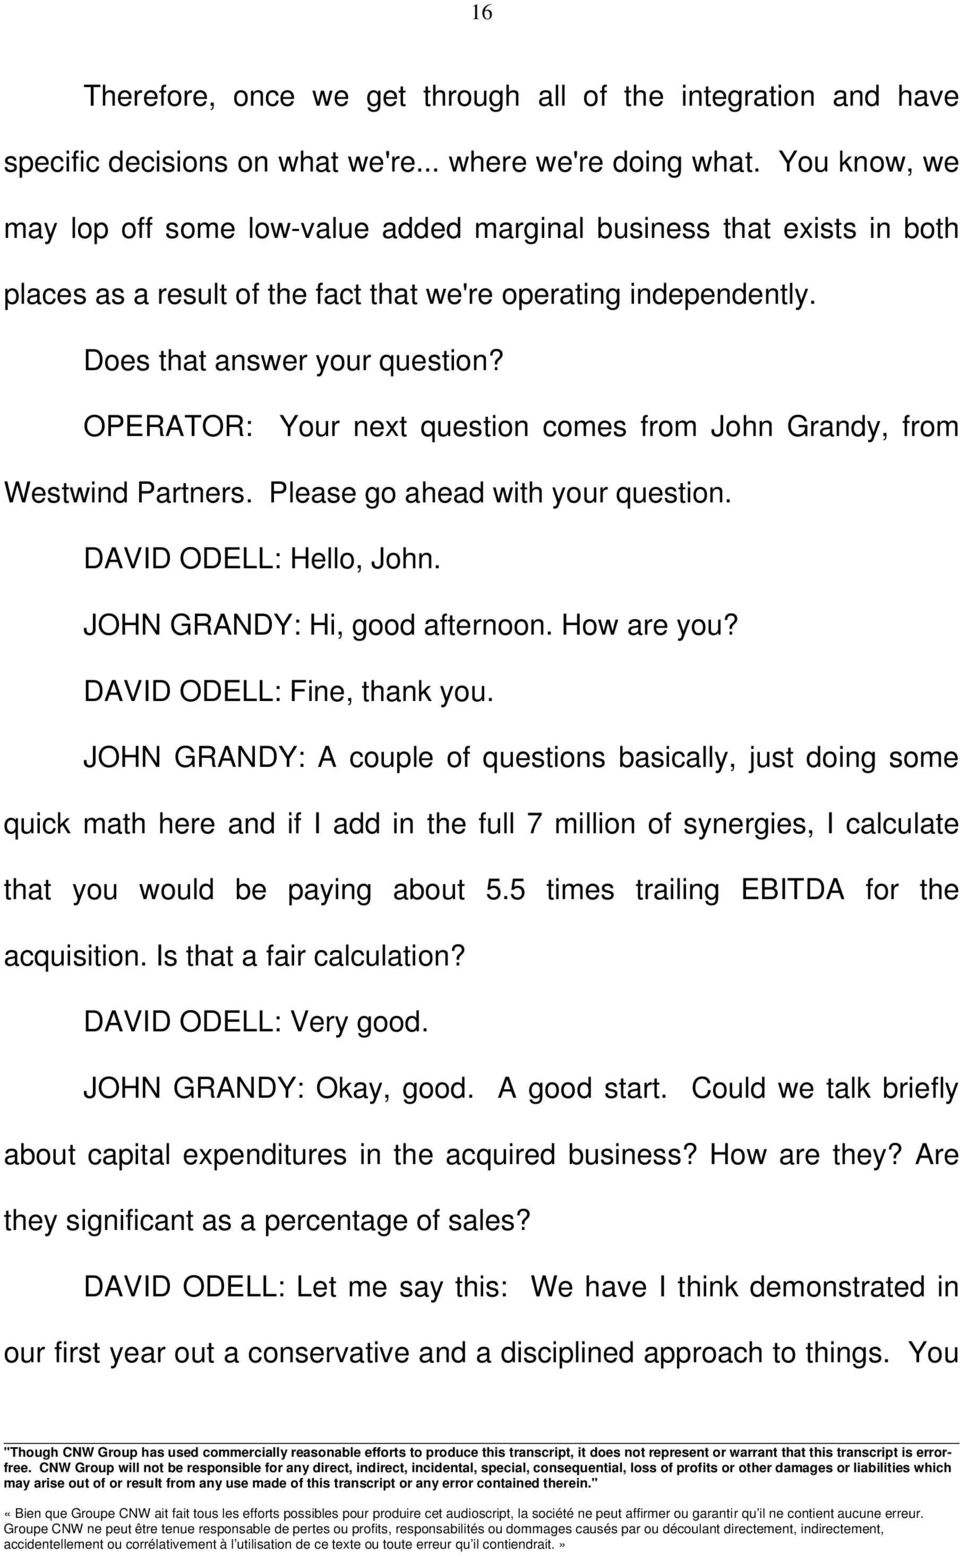 OPERATOR: Your next question comes from John Grandy, from Westwind Partners. Please go ahead with your question. DAVID ODELL: Hello, John. JOHN GRANDY: Hi, good afternoon. How are you?